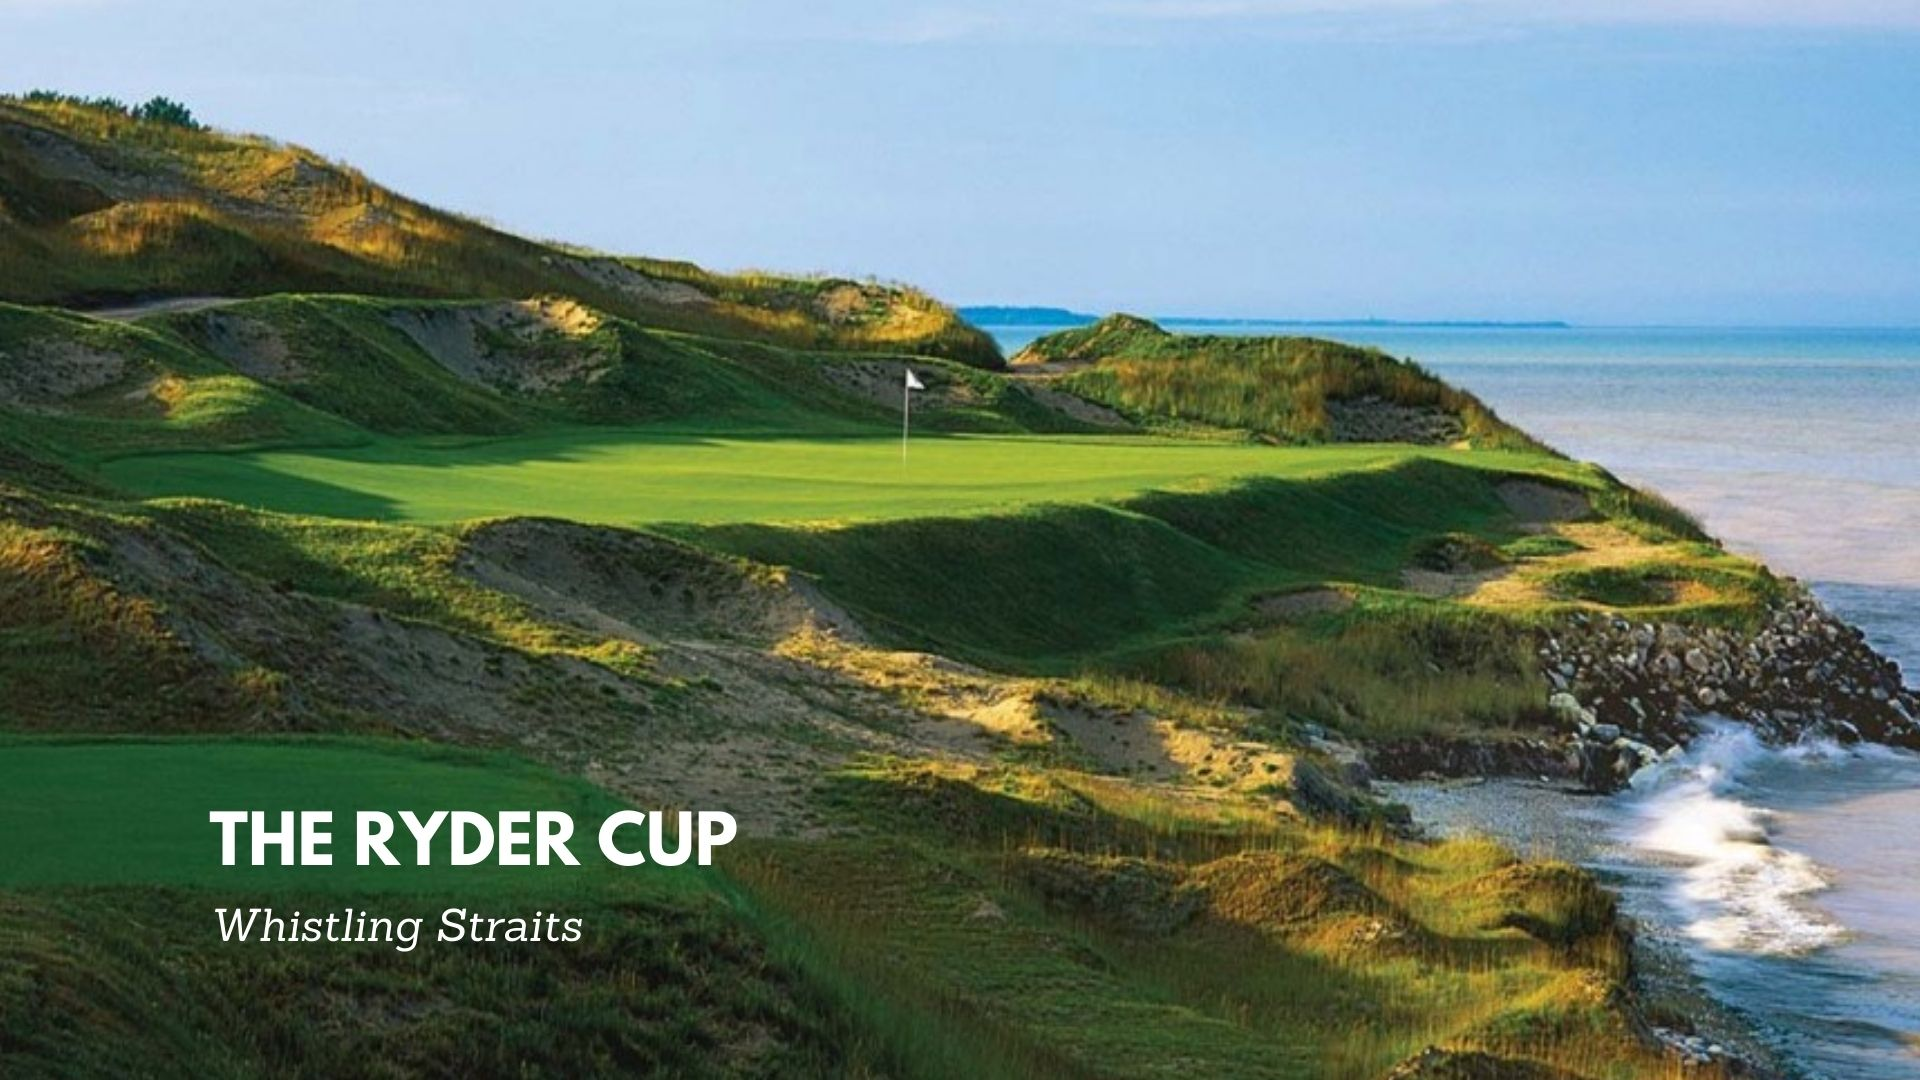 U.S. Ryder Cup team to gather at Whistling Straits